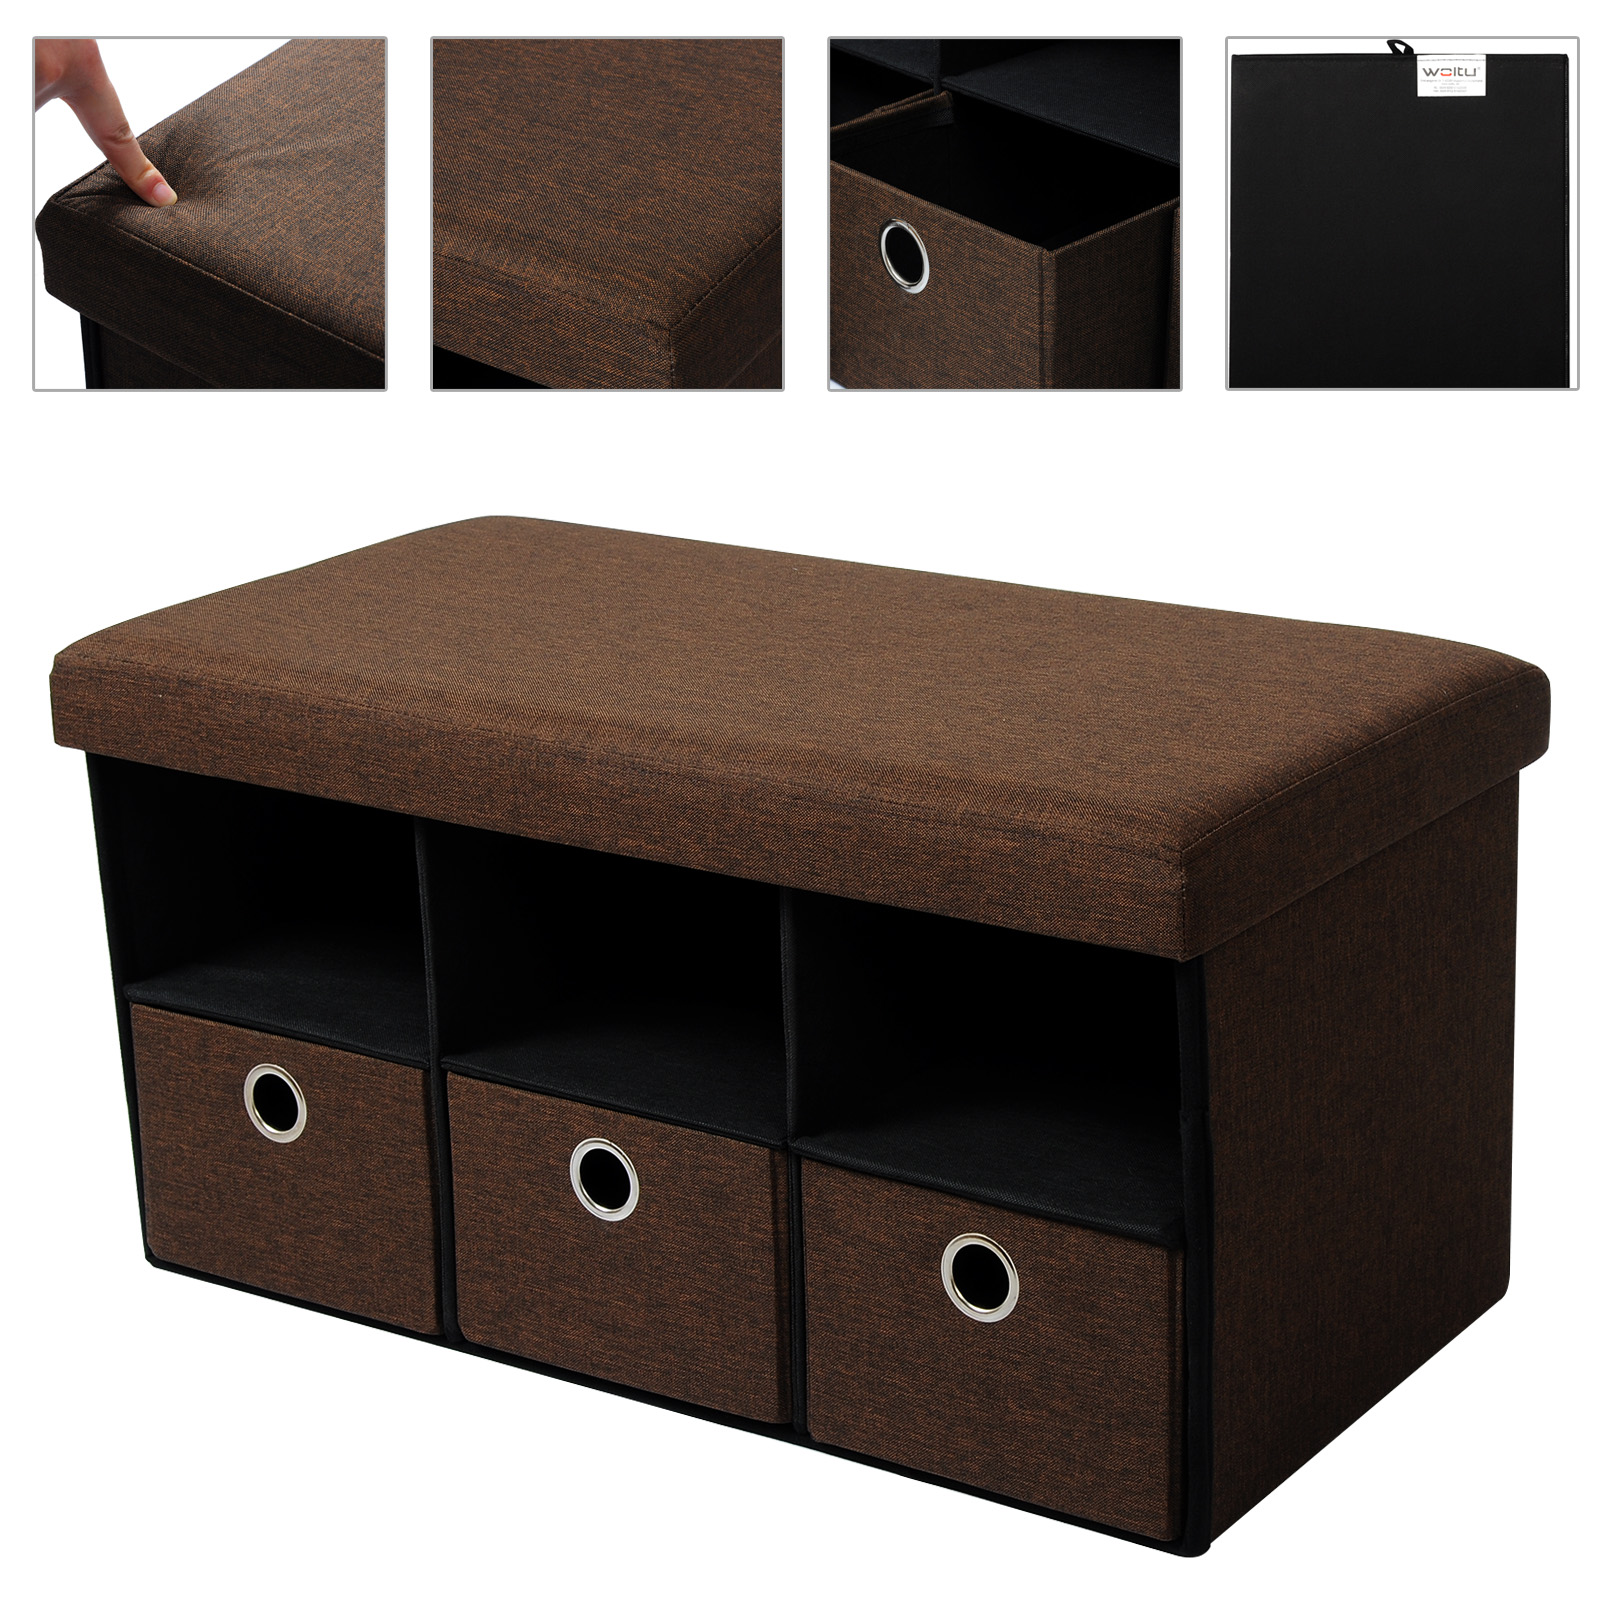 grand banc ottomane pouf coffre de rangement tabouret pliant avec 3 tiroirs f203 ebay. Black Bedroom Furniture Sets. Home Design Ideas